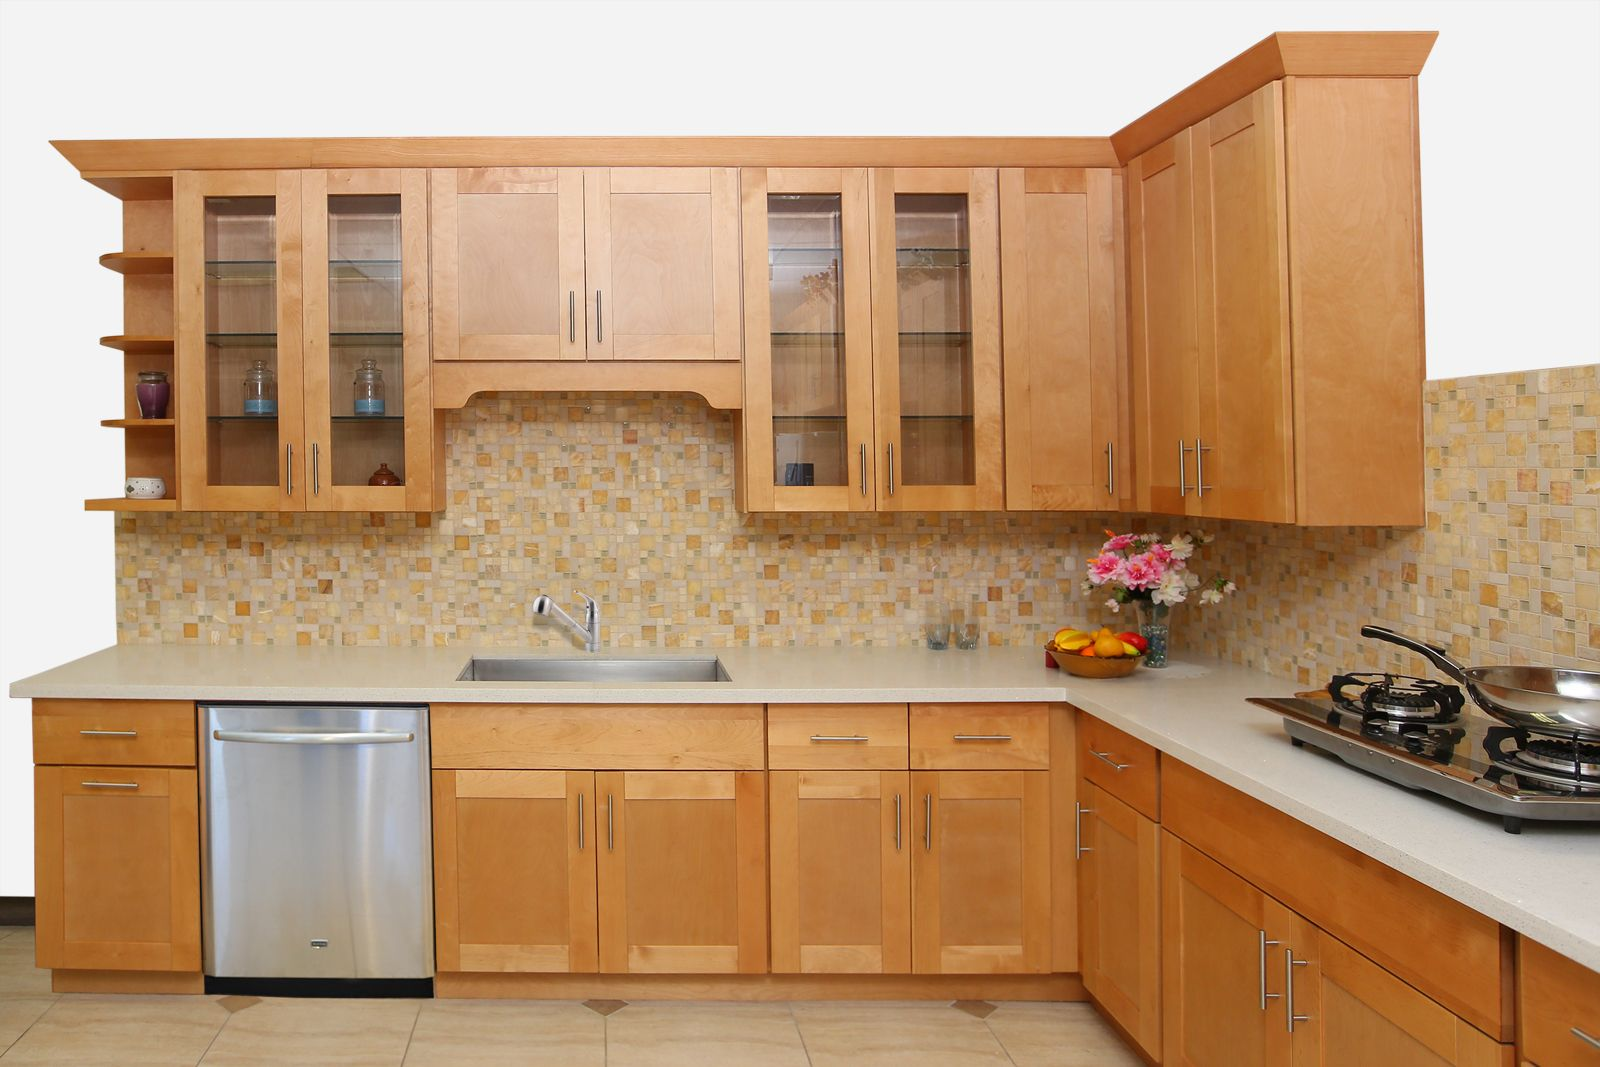 Honey Shaker Maple Cabinets Ready To Assemble Kitchen Cabinets Shaker Style Kitchen Cabinets Shaker Kitchen Cabinets Maple Kitchen Cabinets